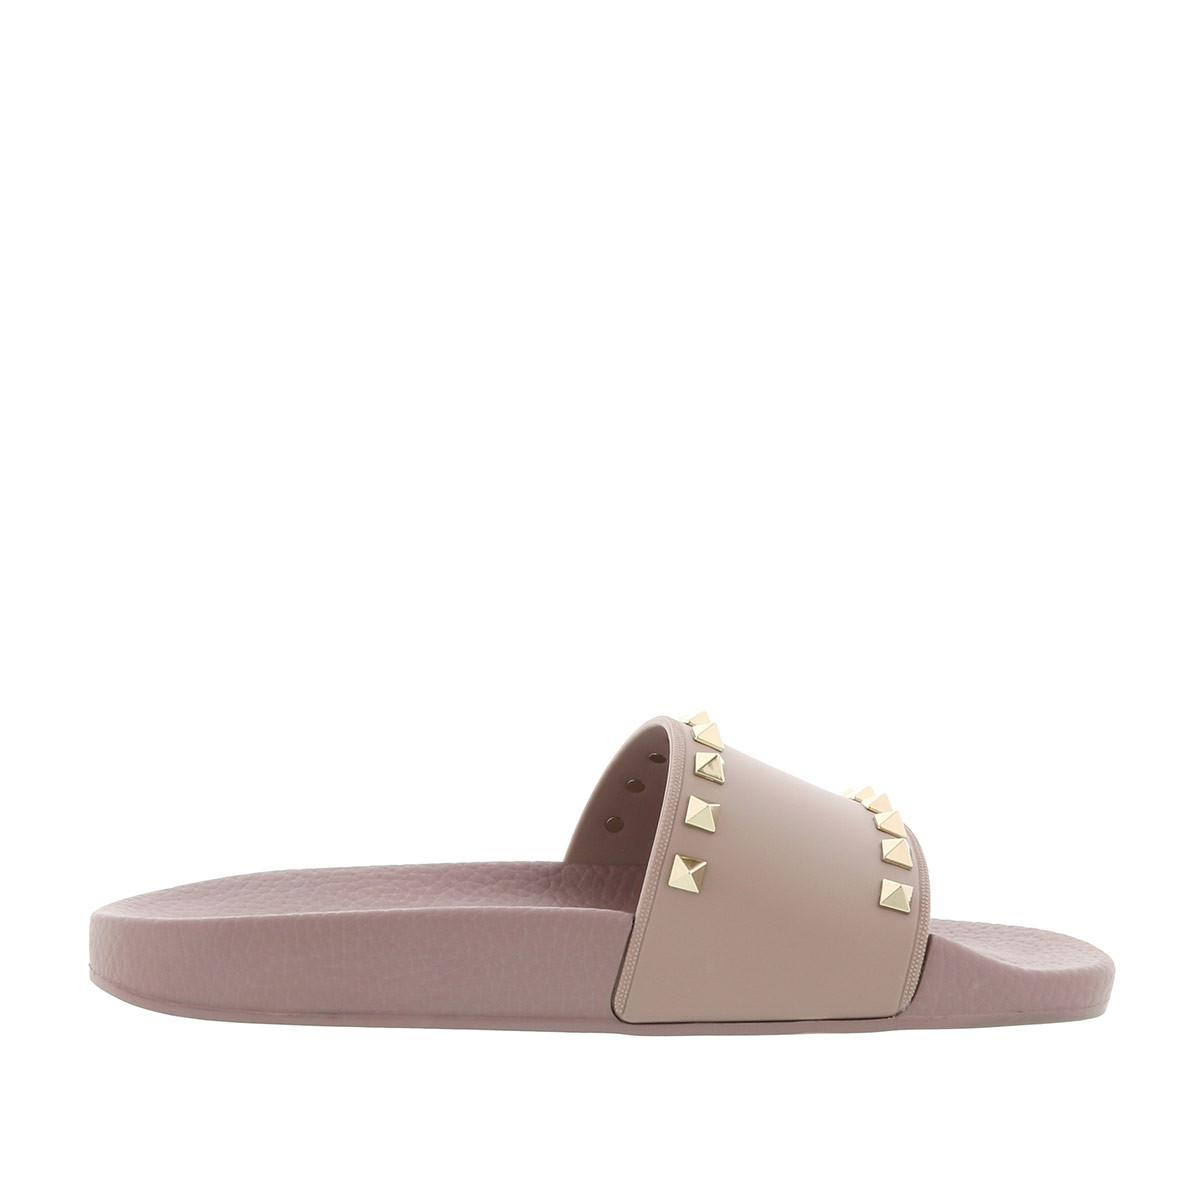 d16f1b8d46 Gallery. Previously sold at: Fashionette · Women's Valentino Rockstud